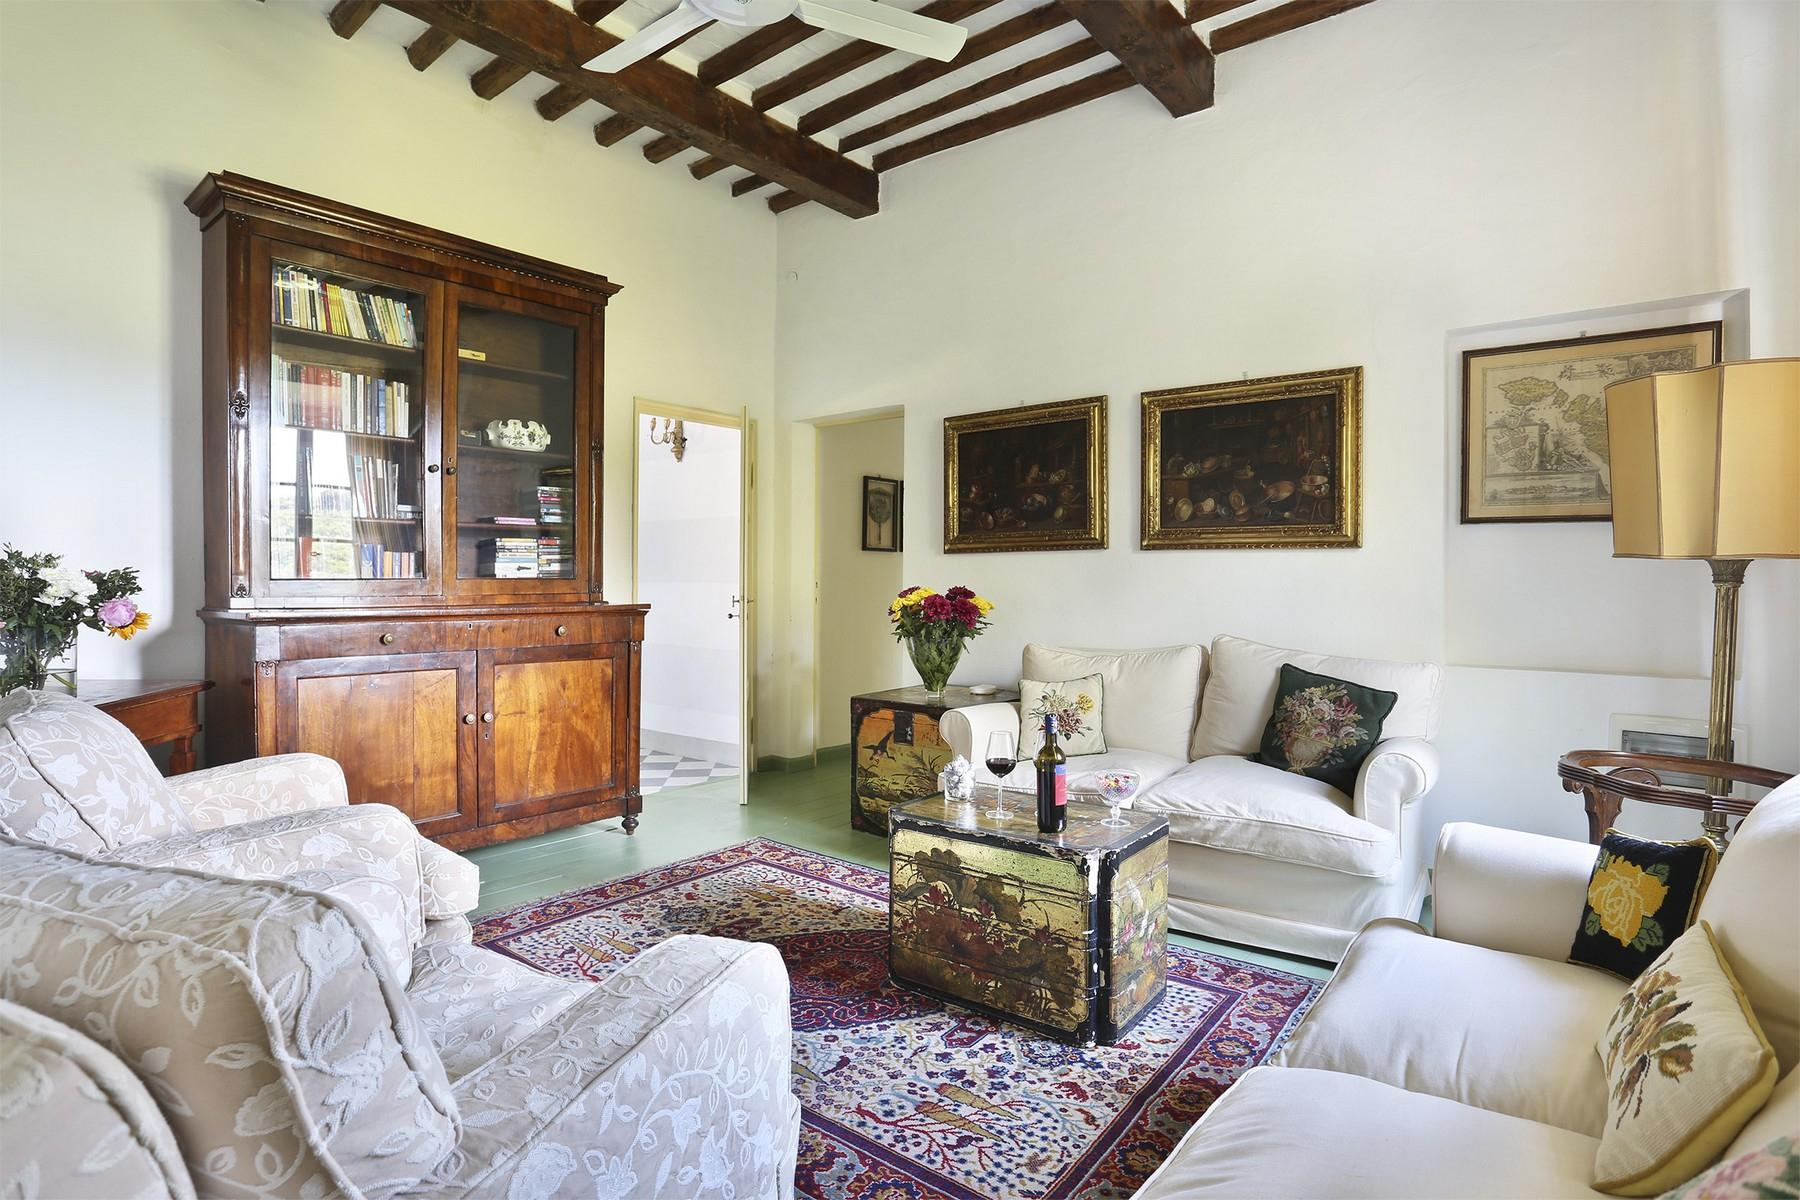 Beautiful villa with swimming pool in the countryside of Lucca - 19